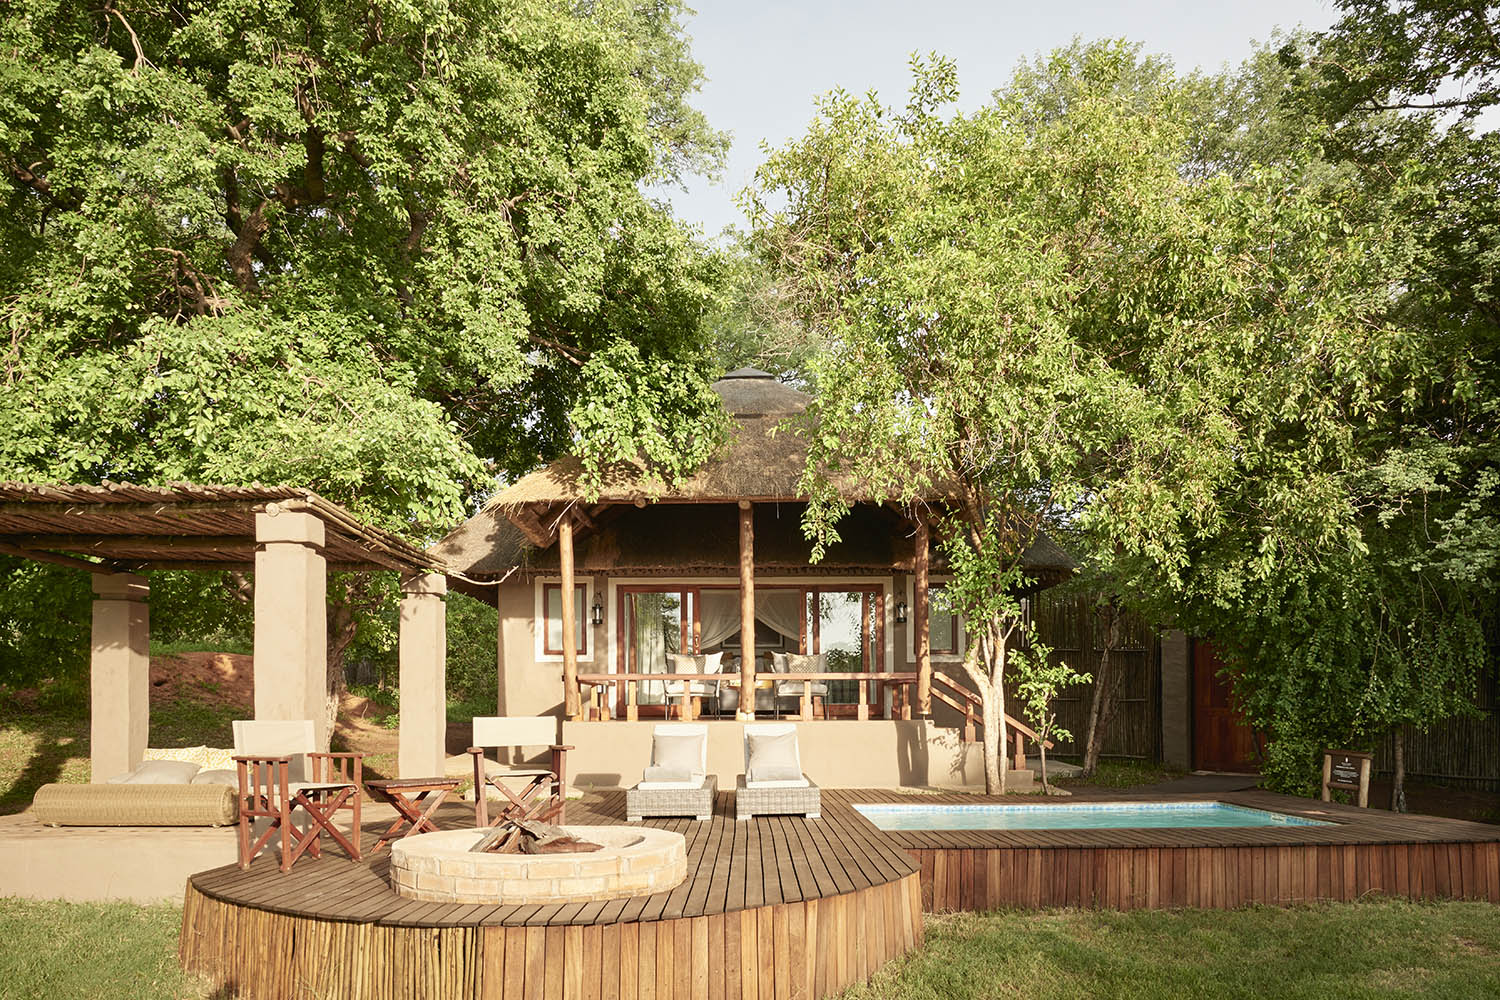 chobe chilwero botswana-lodges-zambia-in-style-chobe-national-park-lodge-pool-deck